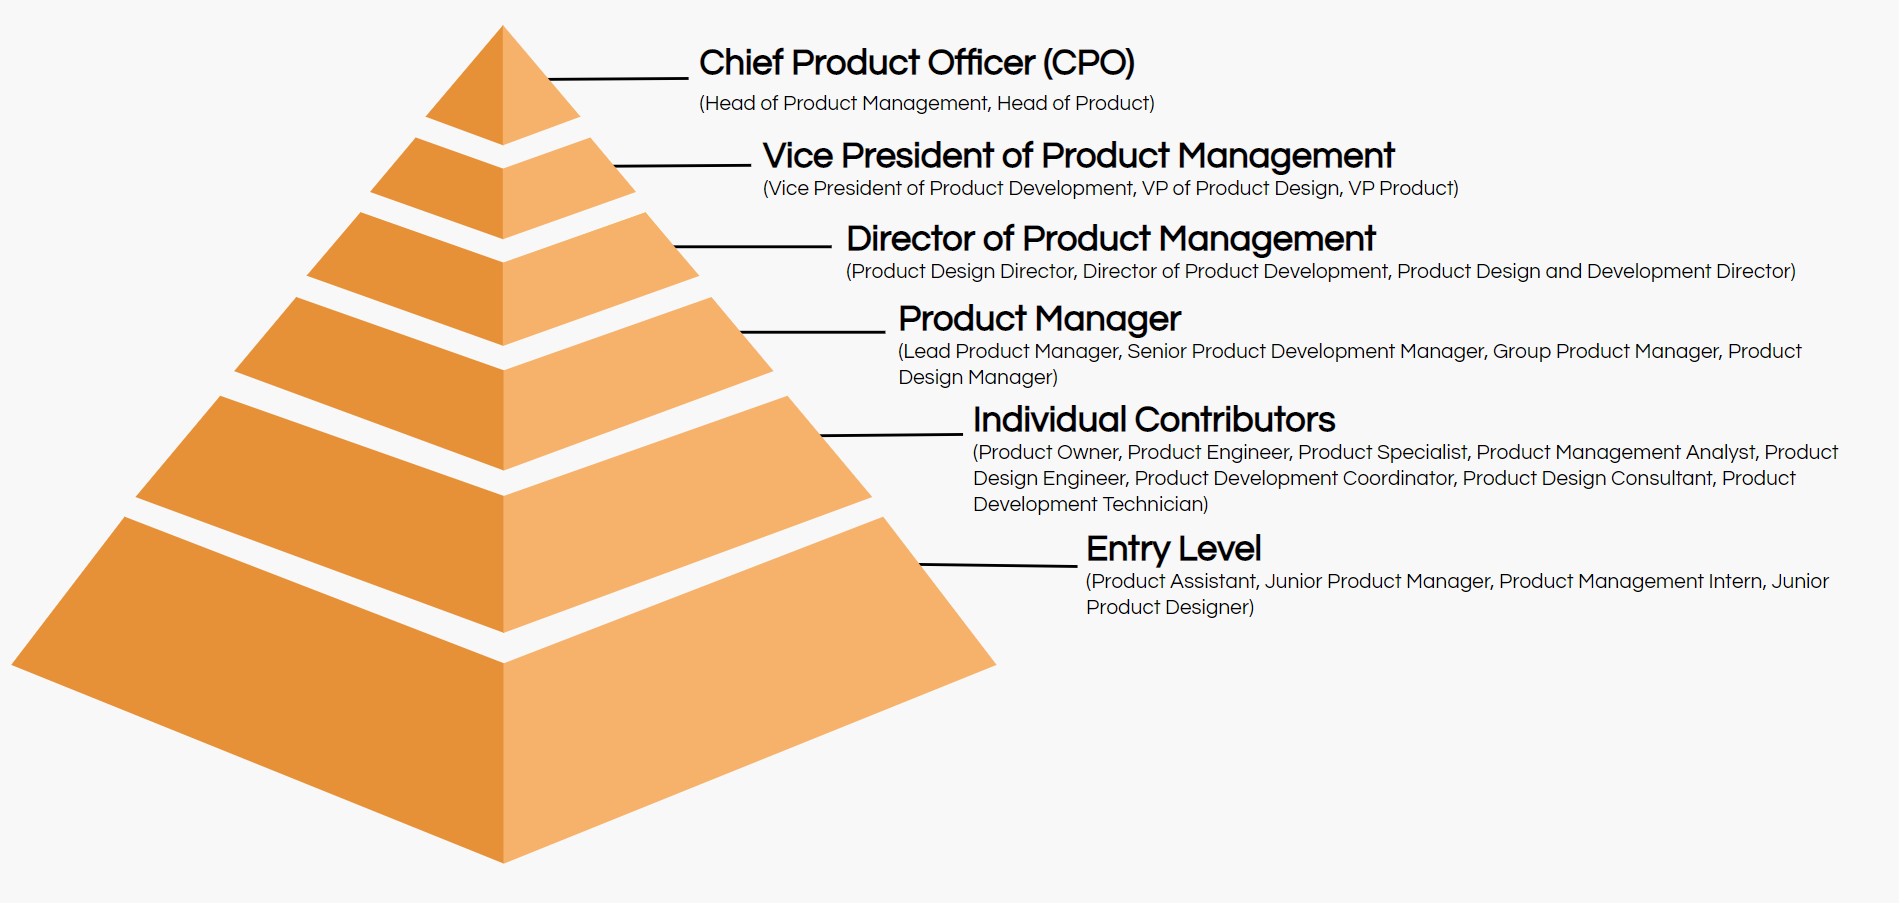 product management job titles hierarchy